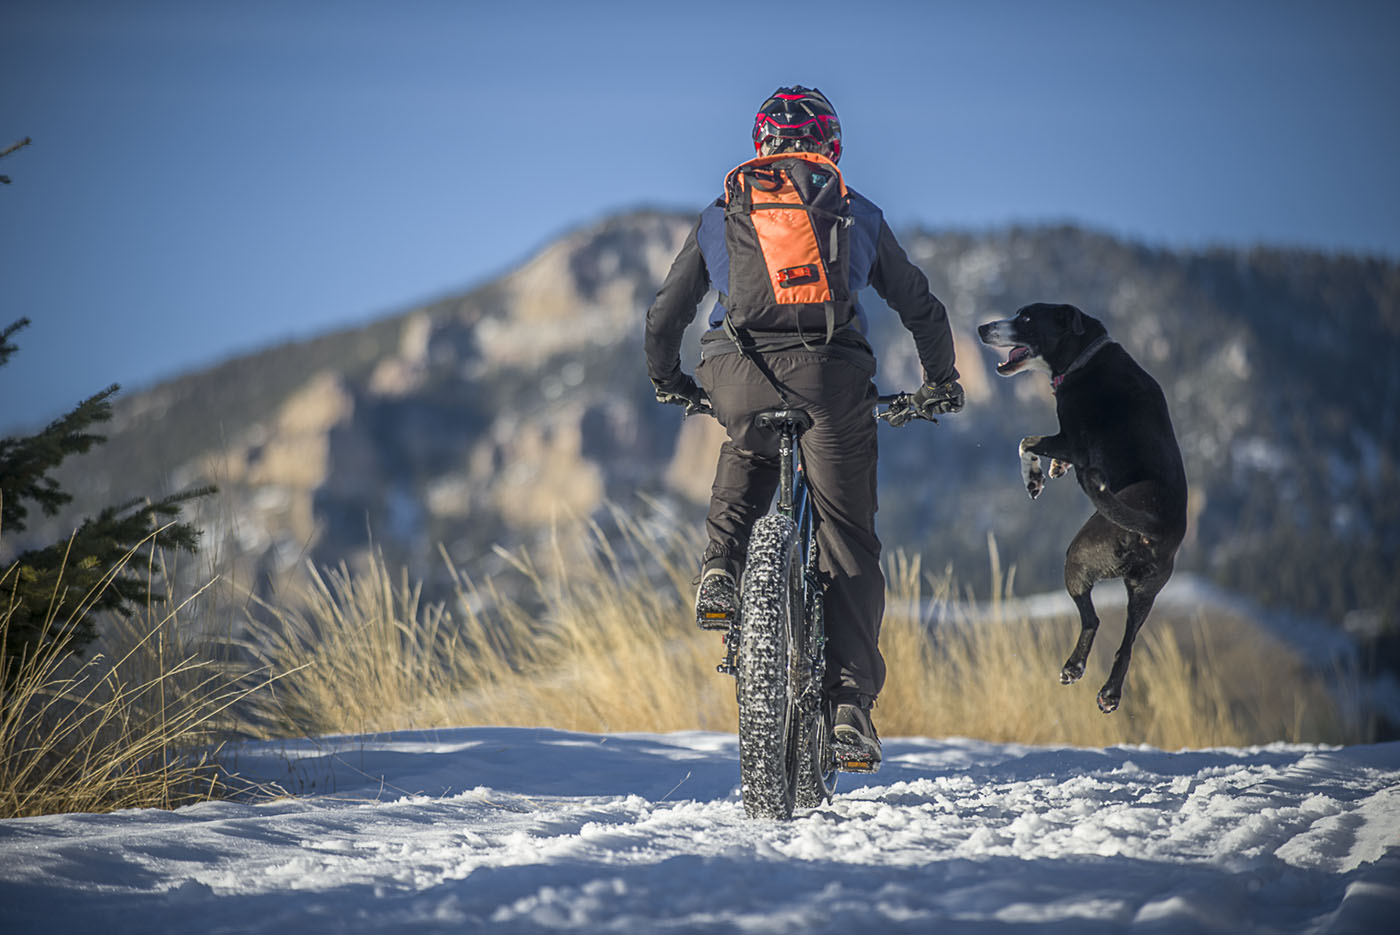 9 out of 10 dogs surveyed prefer fat biking to satisfy their winter recreational needs.